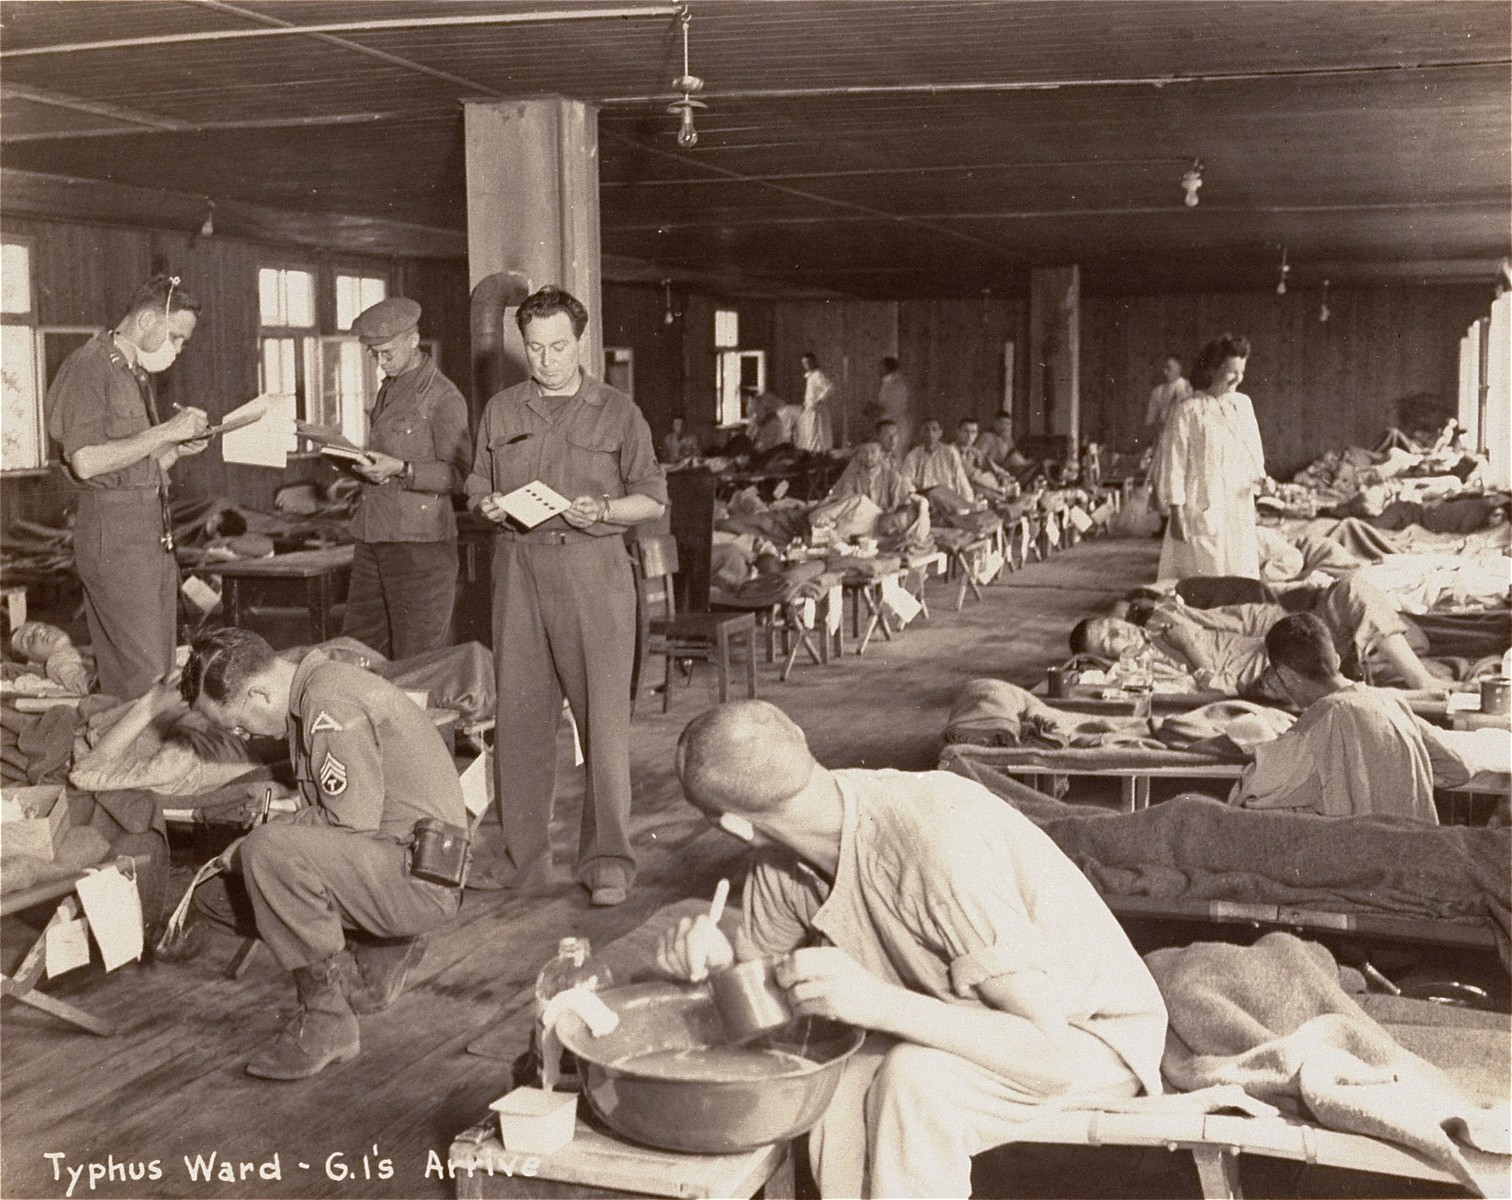 American medical personnel at work in a typhus ward in a hospital for Dachau survivors.